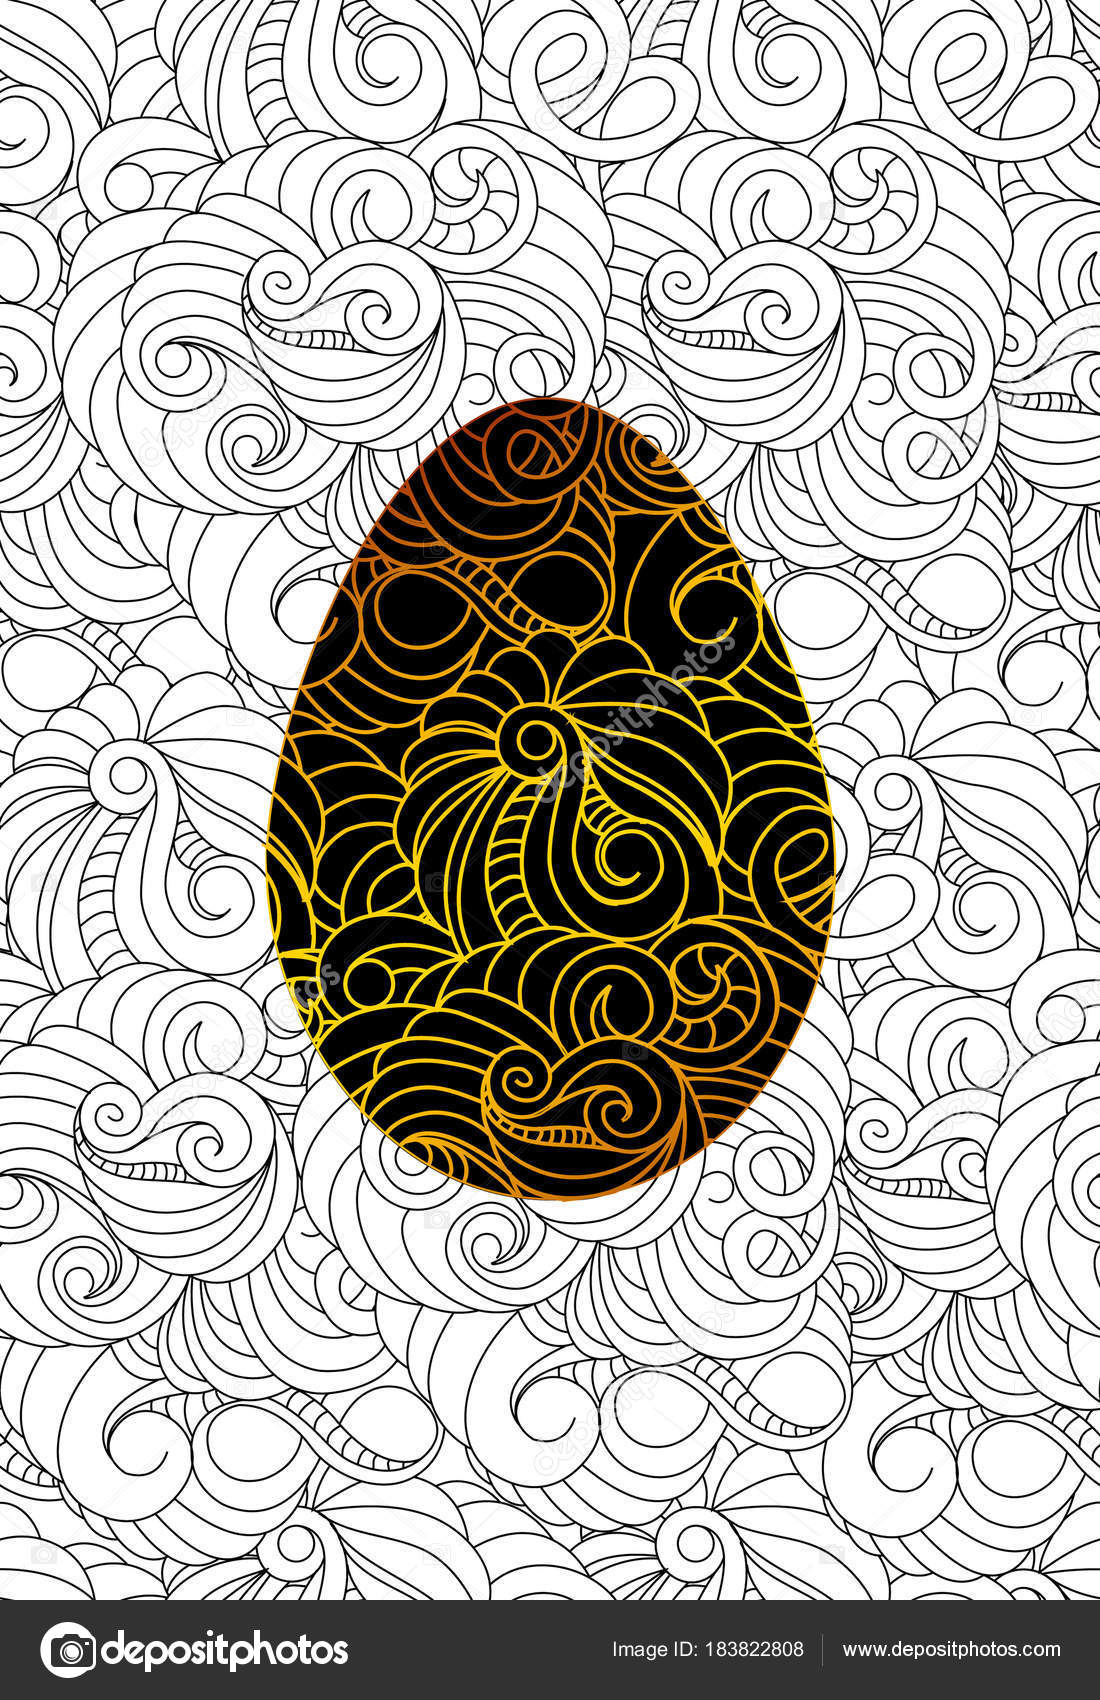 Gold Easter Egg And Seamless Monochrome Abstract Pattern For Col